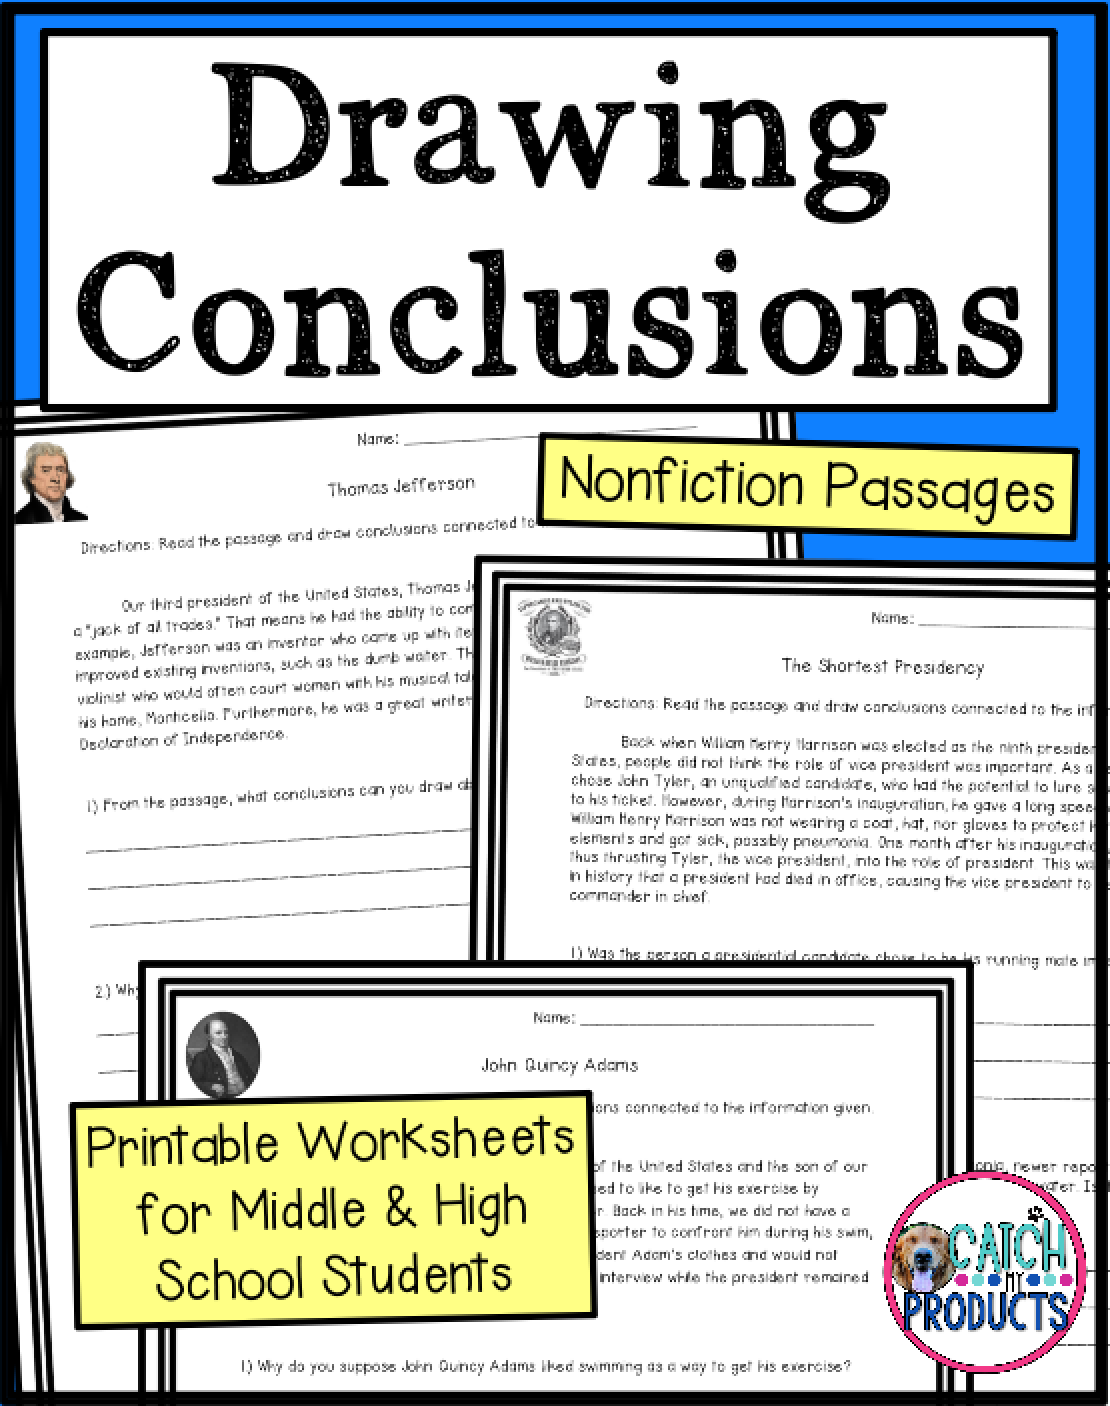 Worksheets Drawing Conclusions In Reading   Printable Worksheets and  Activities for Teachers [ 1406 x 1110 Pixel ]